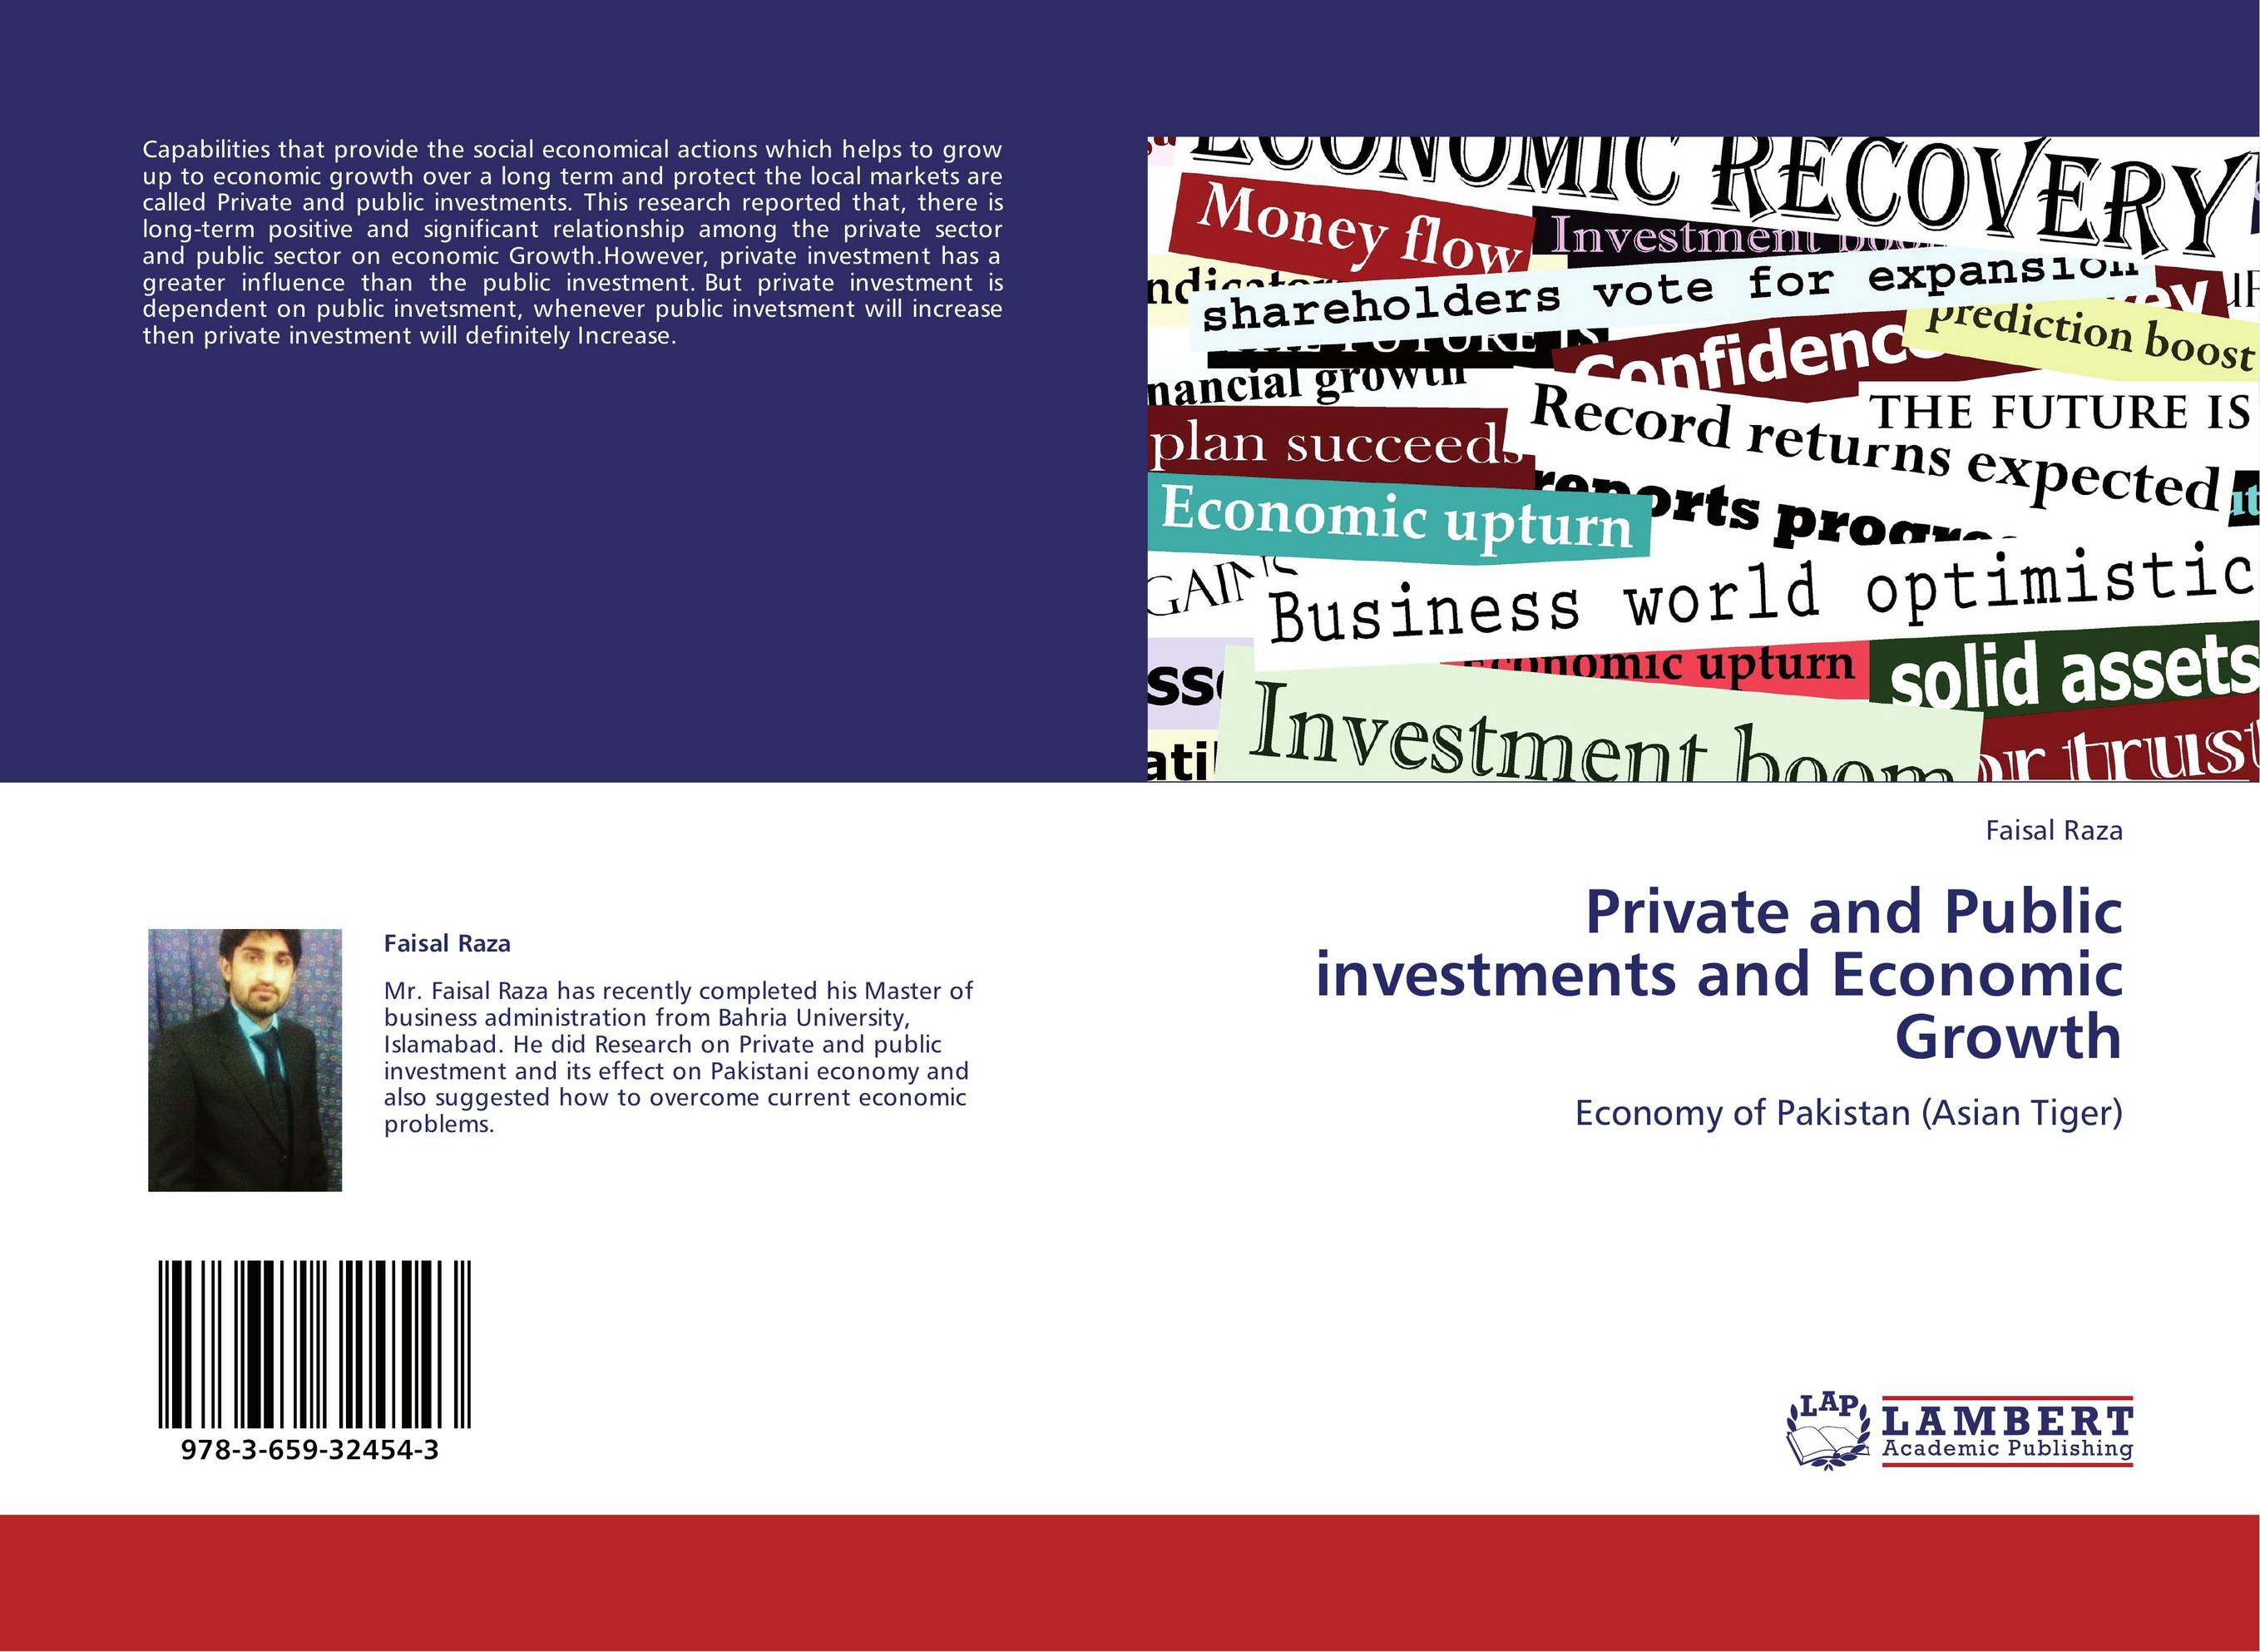 Private and Public investments and Economic Growth